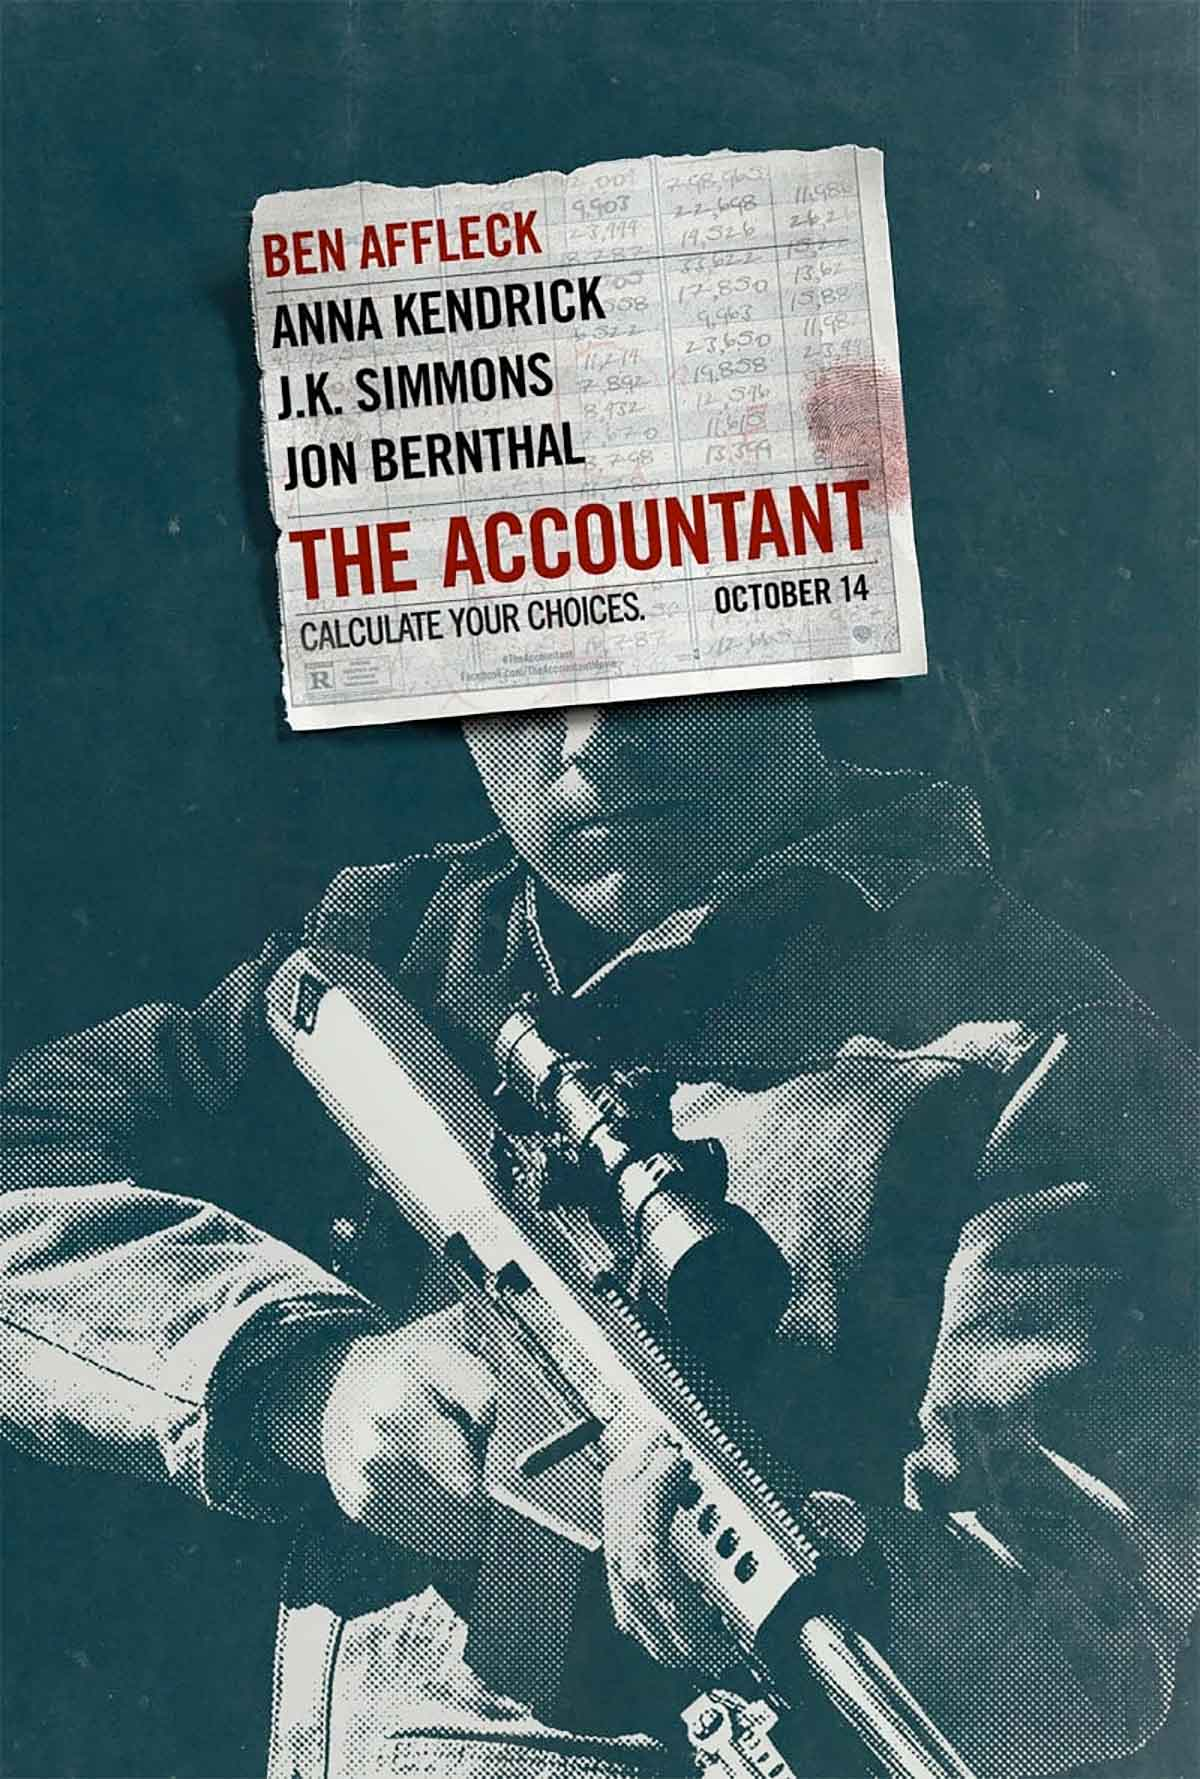 The Accountant Filminden Yeni Bir Afiş Geldi